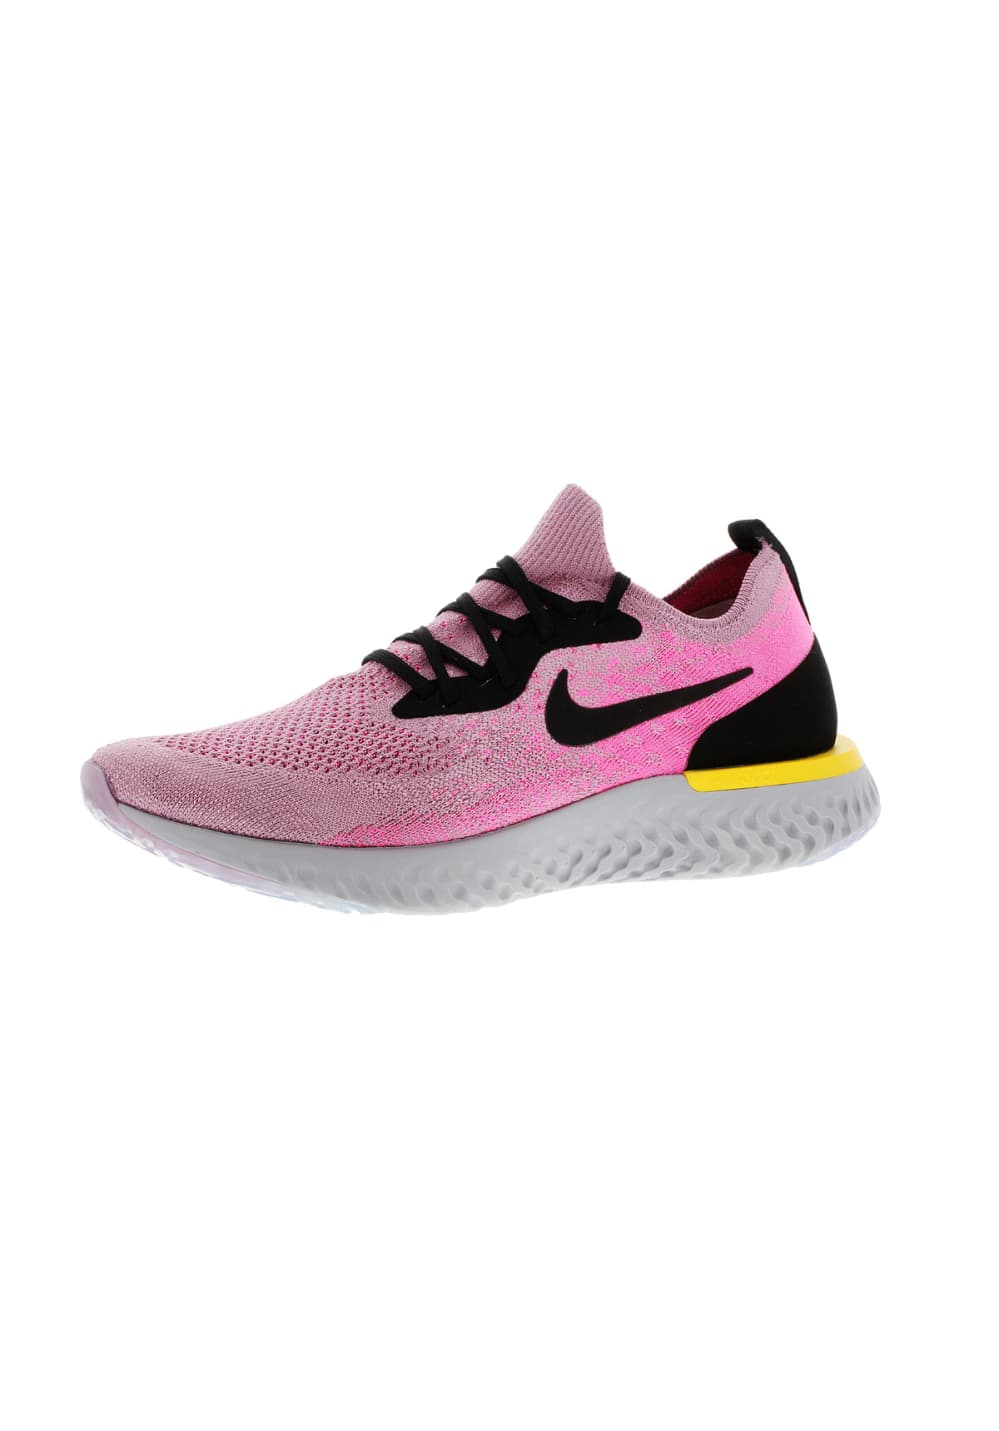 b0fc4590e3ce7a ... Nike Odyssey React - Running shoes for Men - Pink. Back to Overview. 1   2  3  4  5. Previous